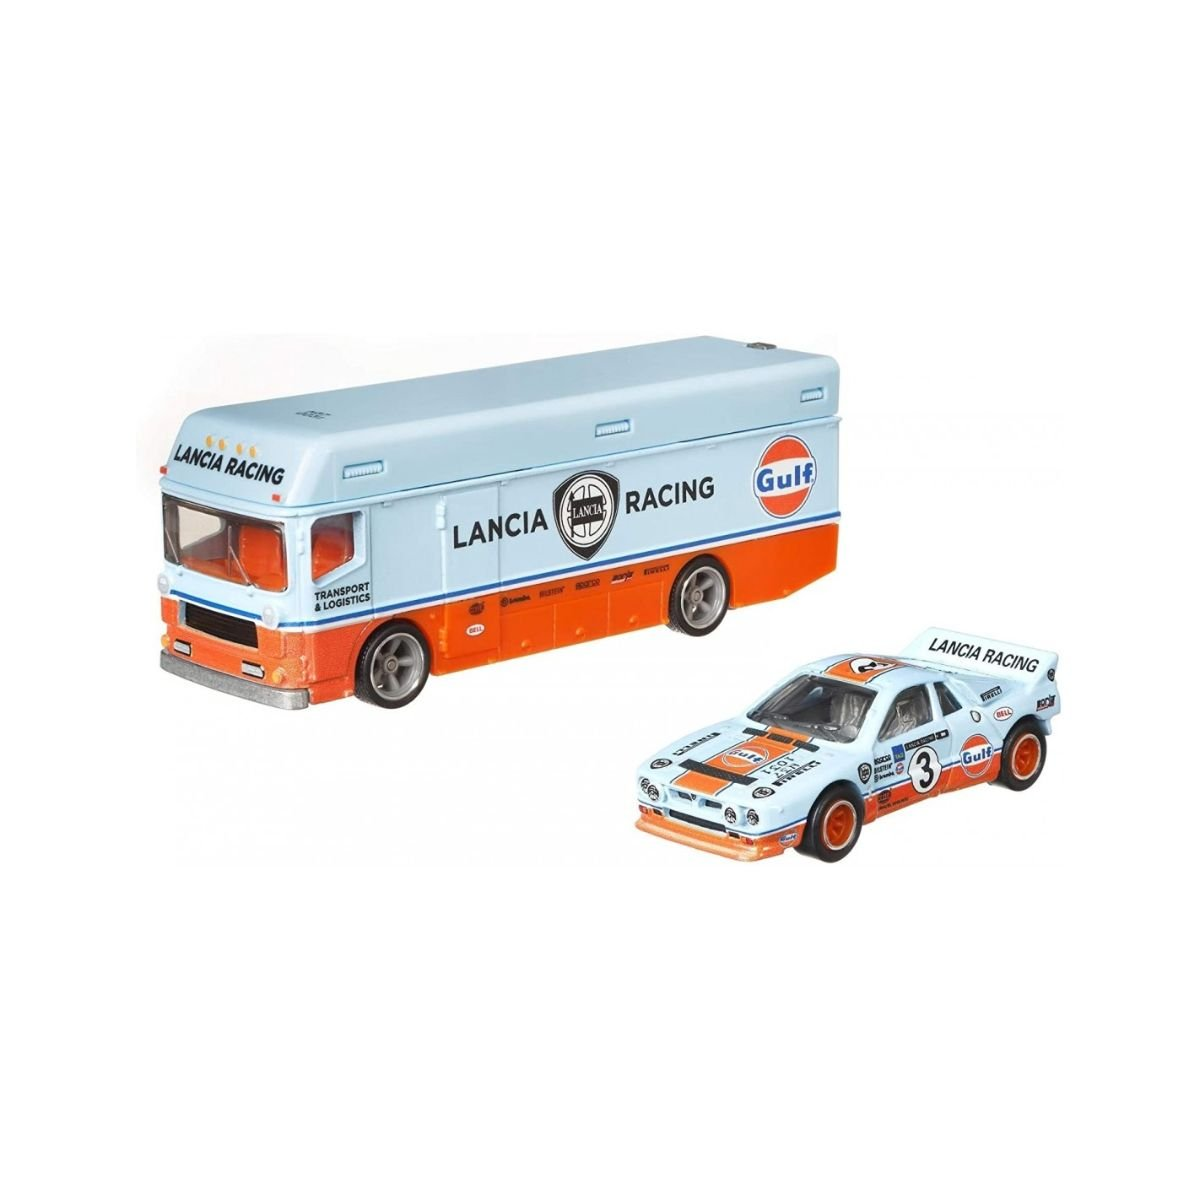 Transportator cu masinuta Hot Wheels, Lancia Rally, GRK49, 1:64